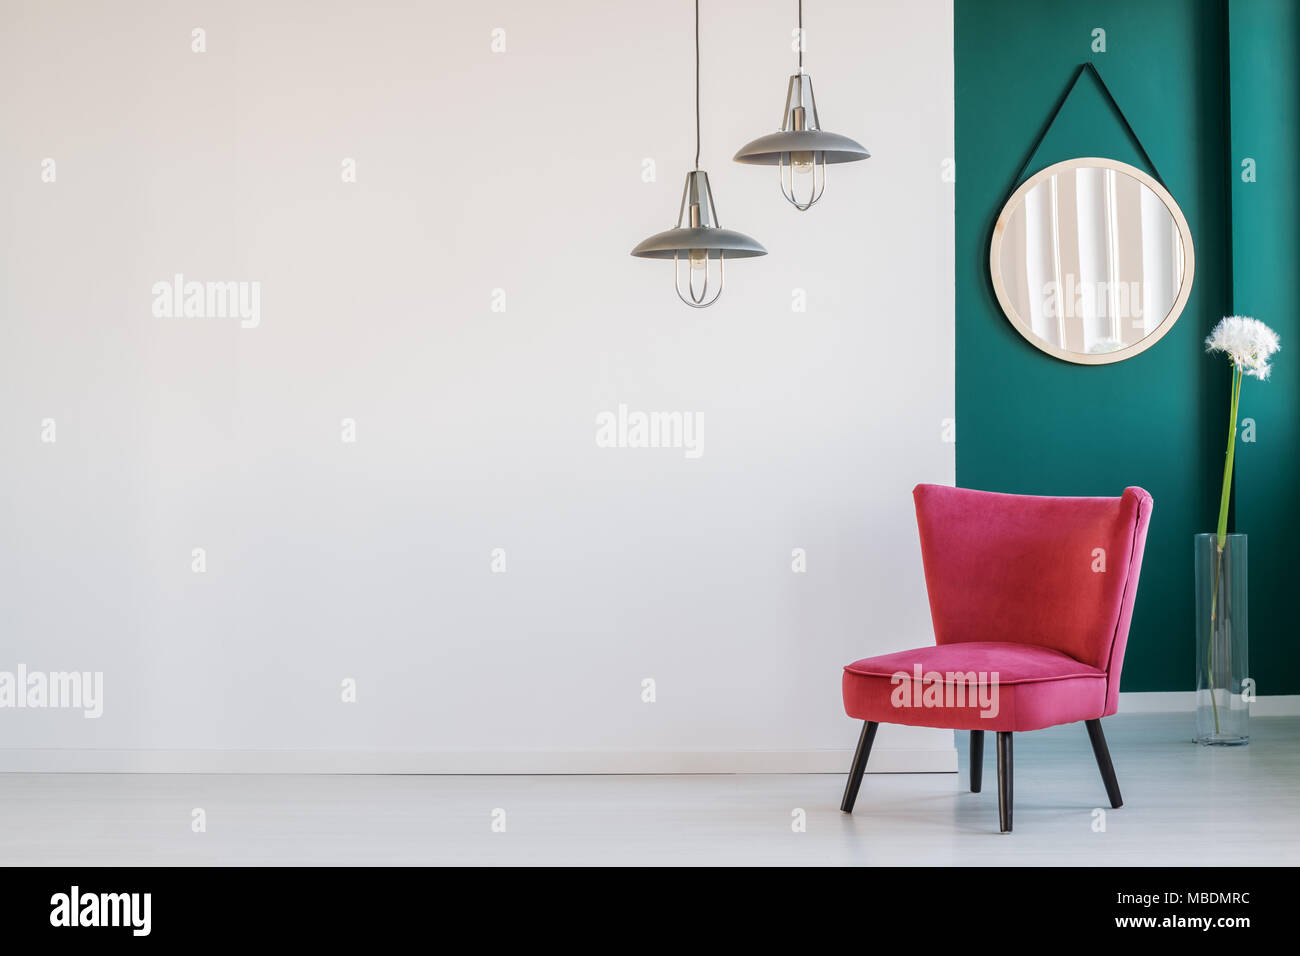 Lamps above red chair and dandelion against green wall with round ...